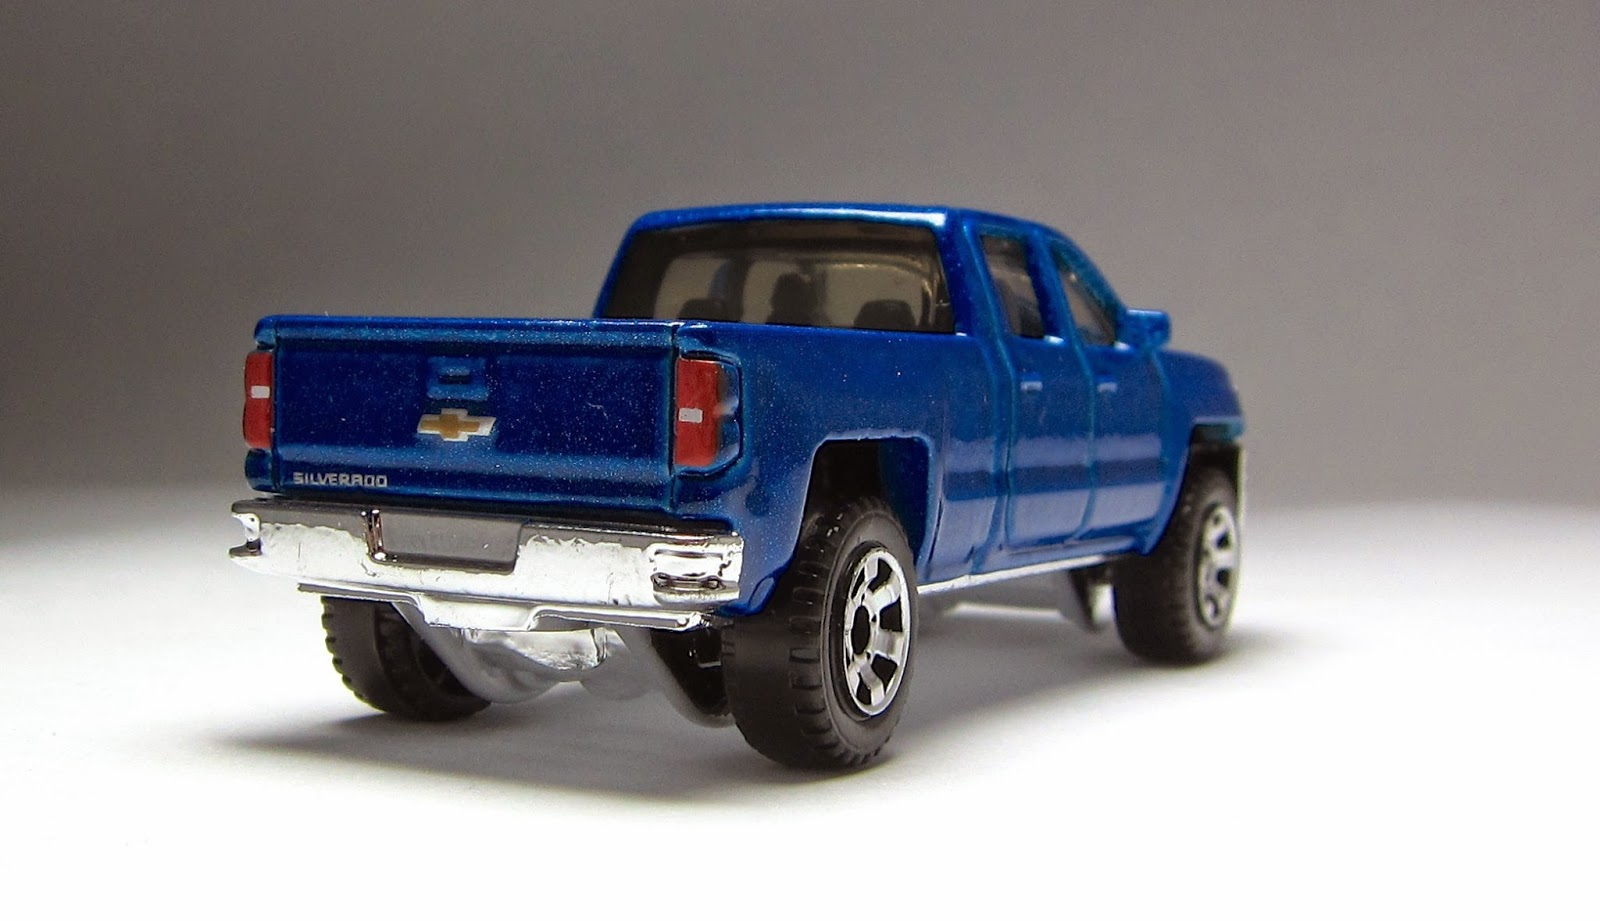 Matchbox 2014 Chevy Silverado 1500 (2014 New Models):